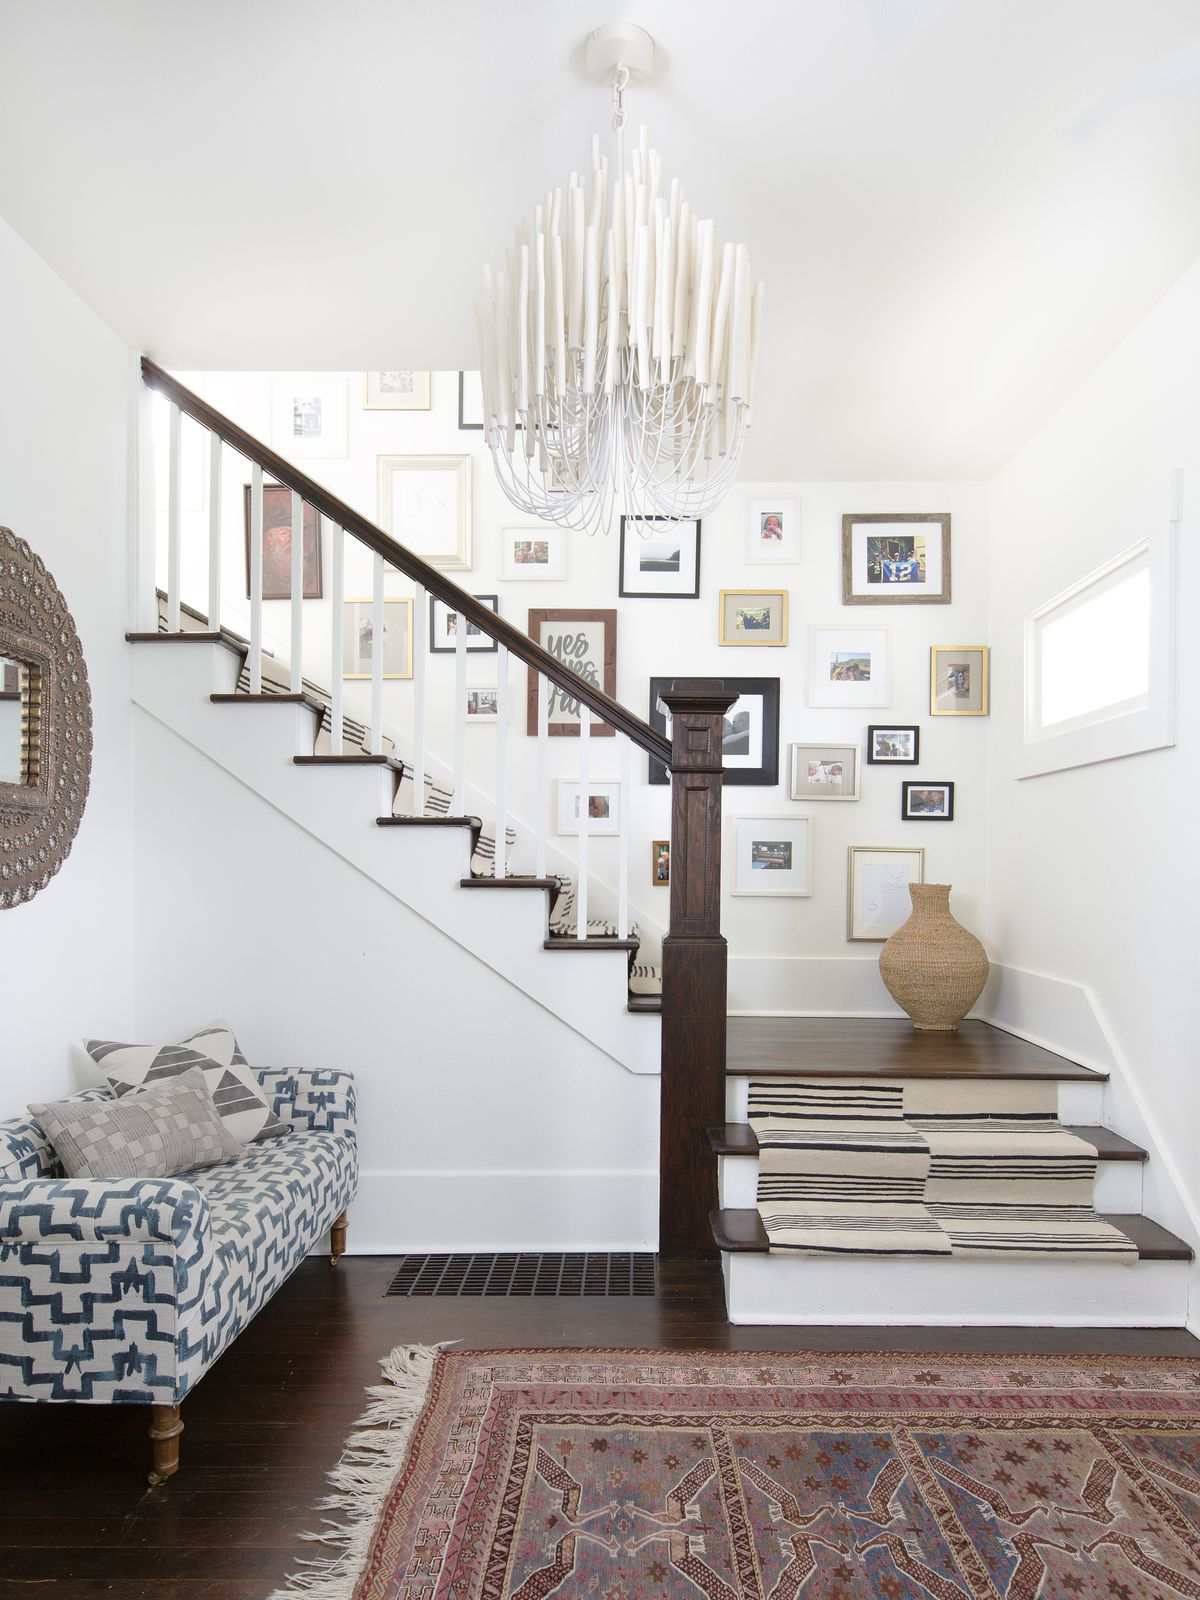 An entry way has a colorful Moroccan rug, a white chandelier with long ceramic tubes, and a striped runner on the stairs.